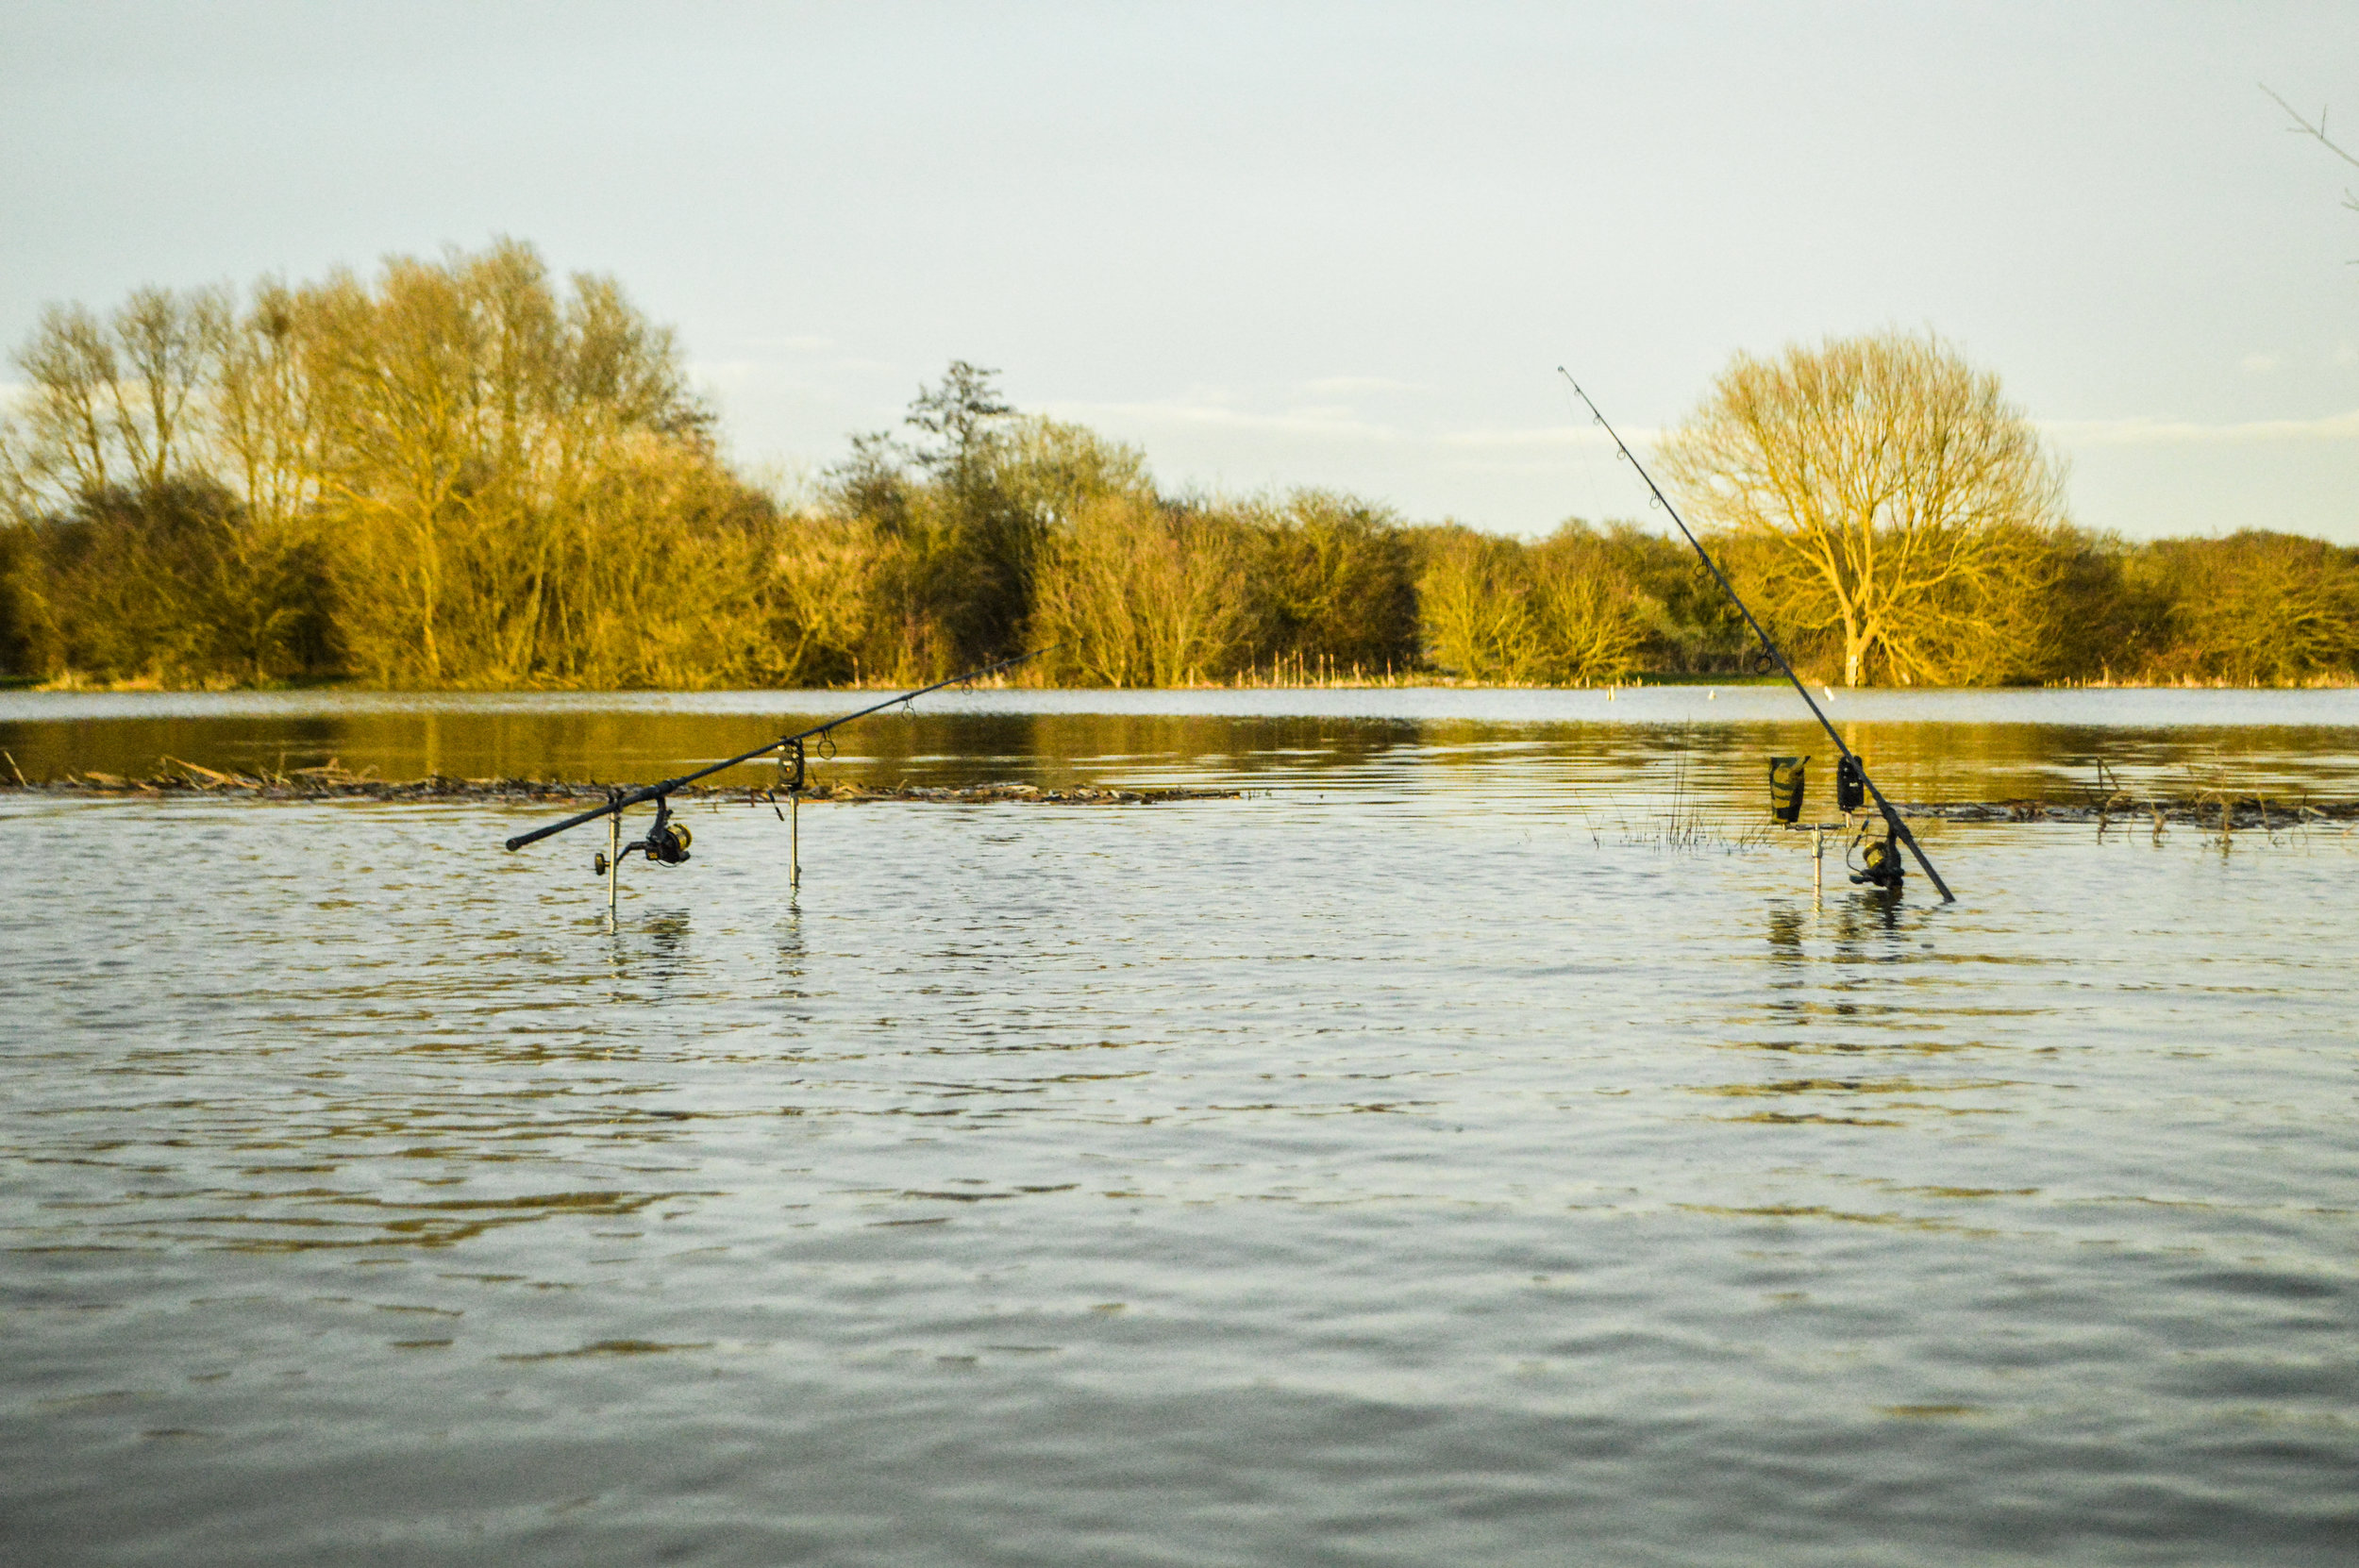 A flooded double-swim, some two foot above its normal level early in the season!